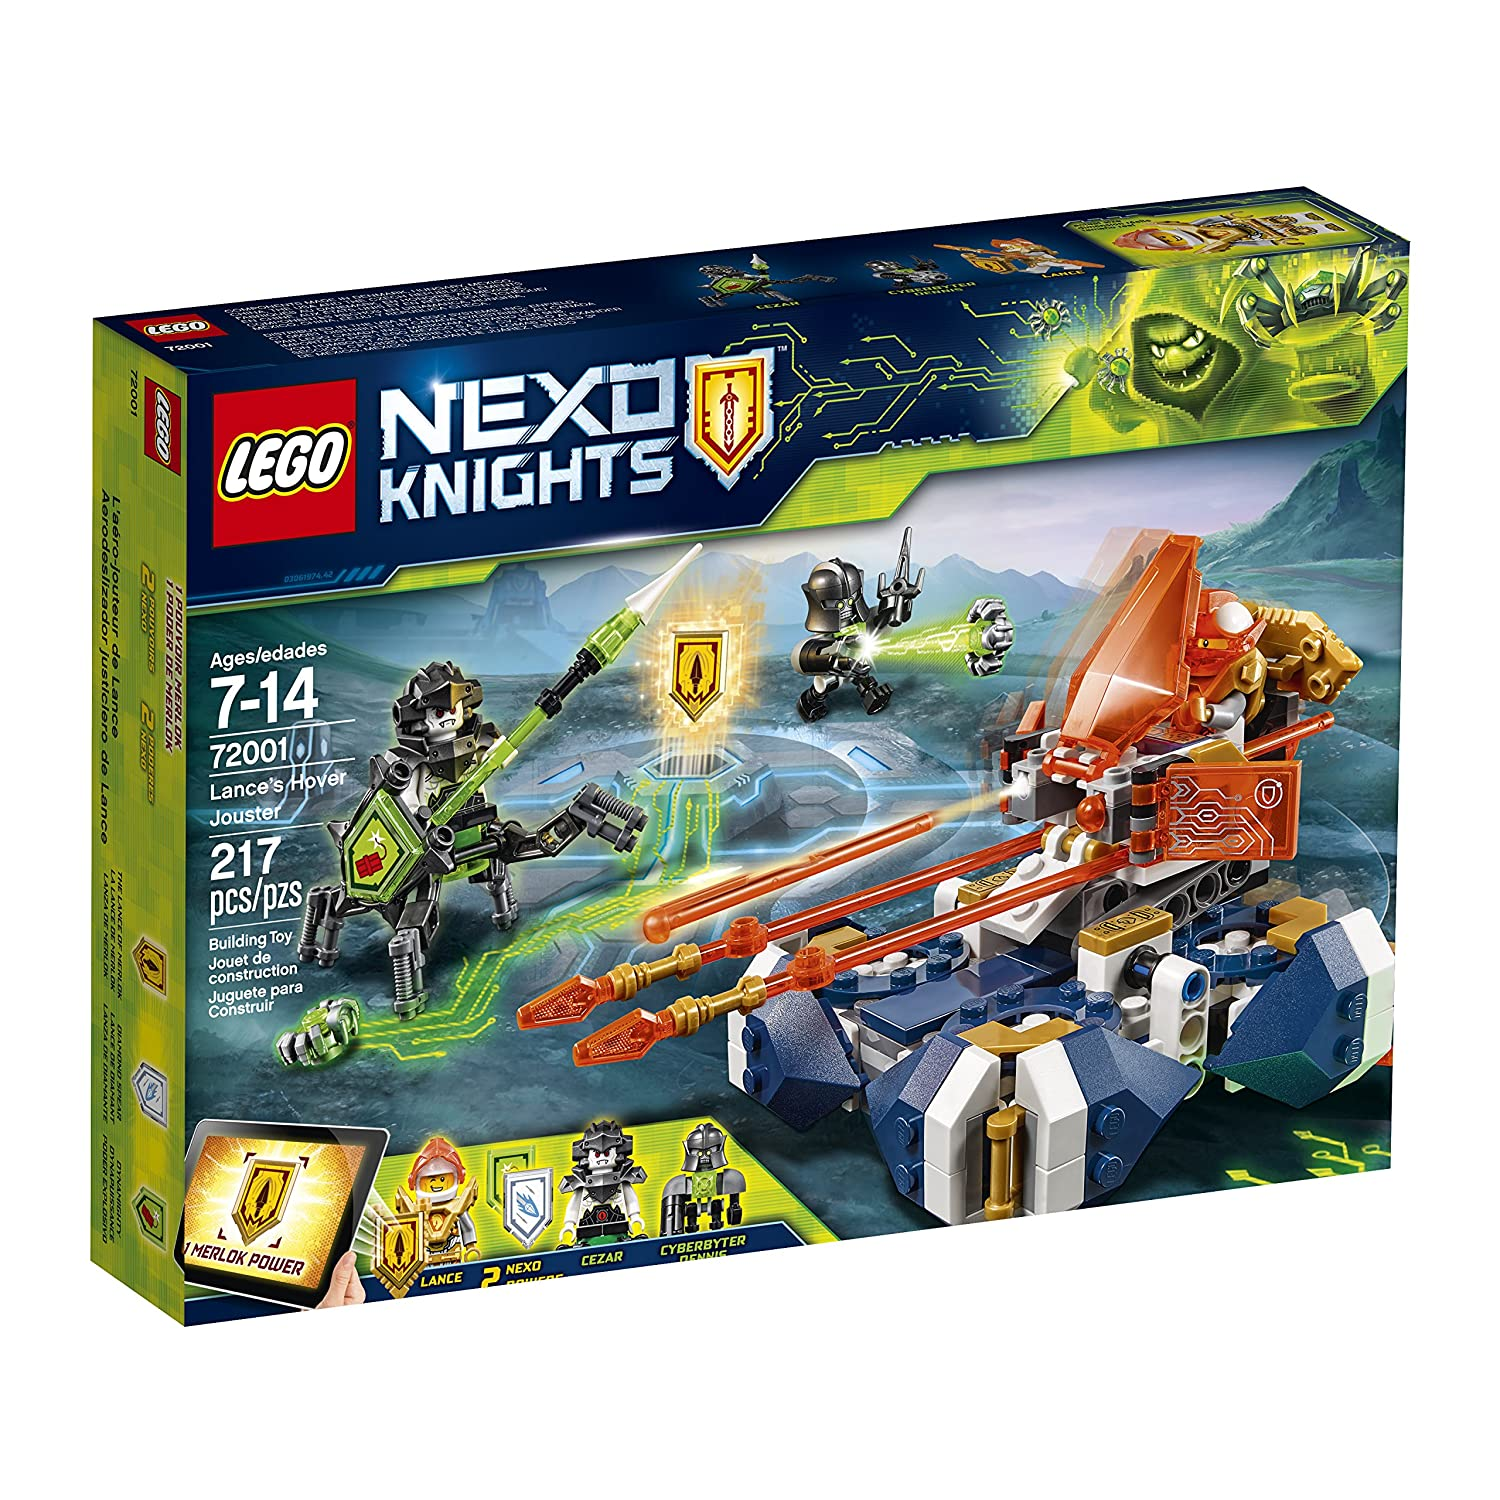 Top 9 Best LEGO Nexo Knights Set Reviews in 2021 16